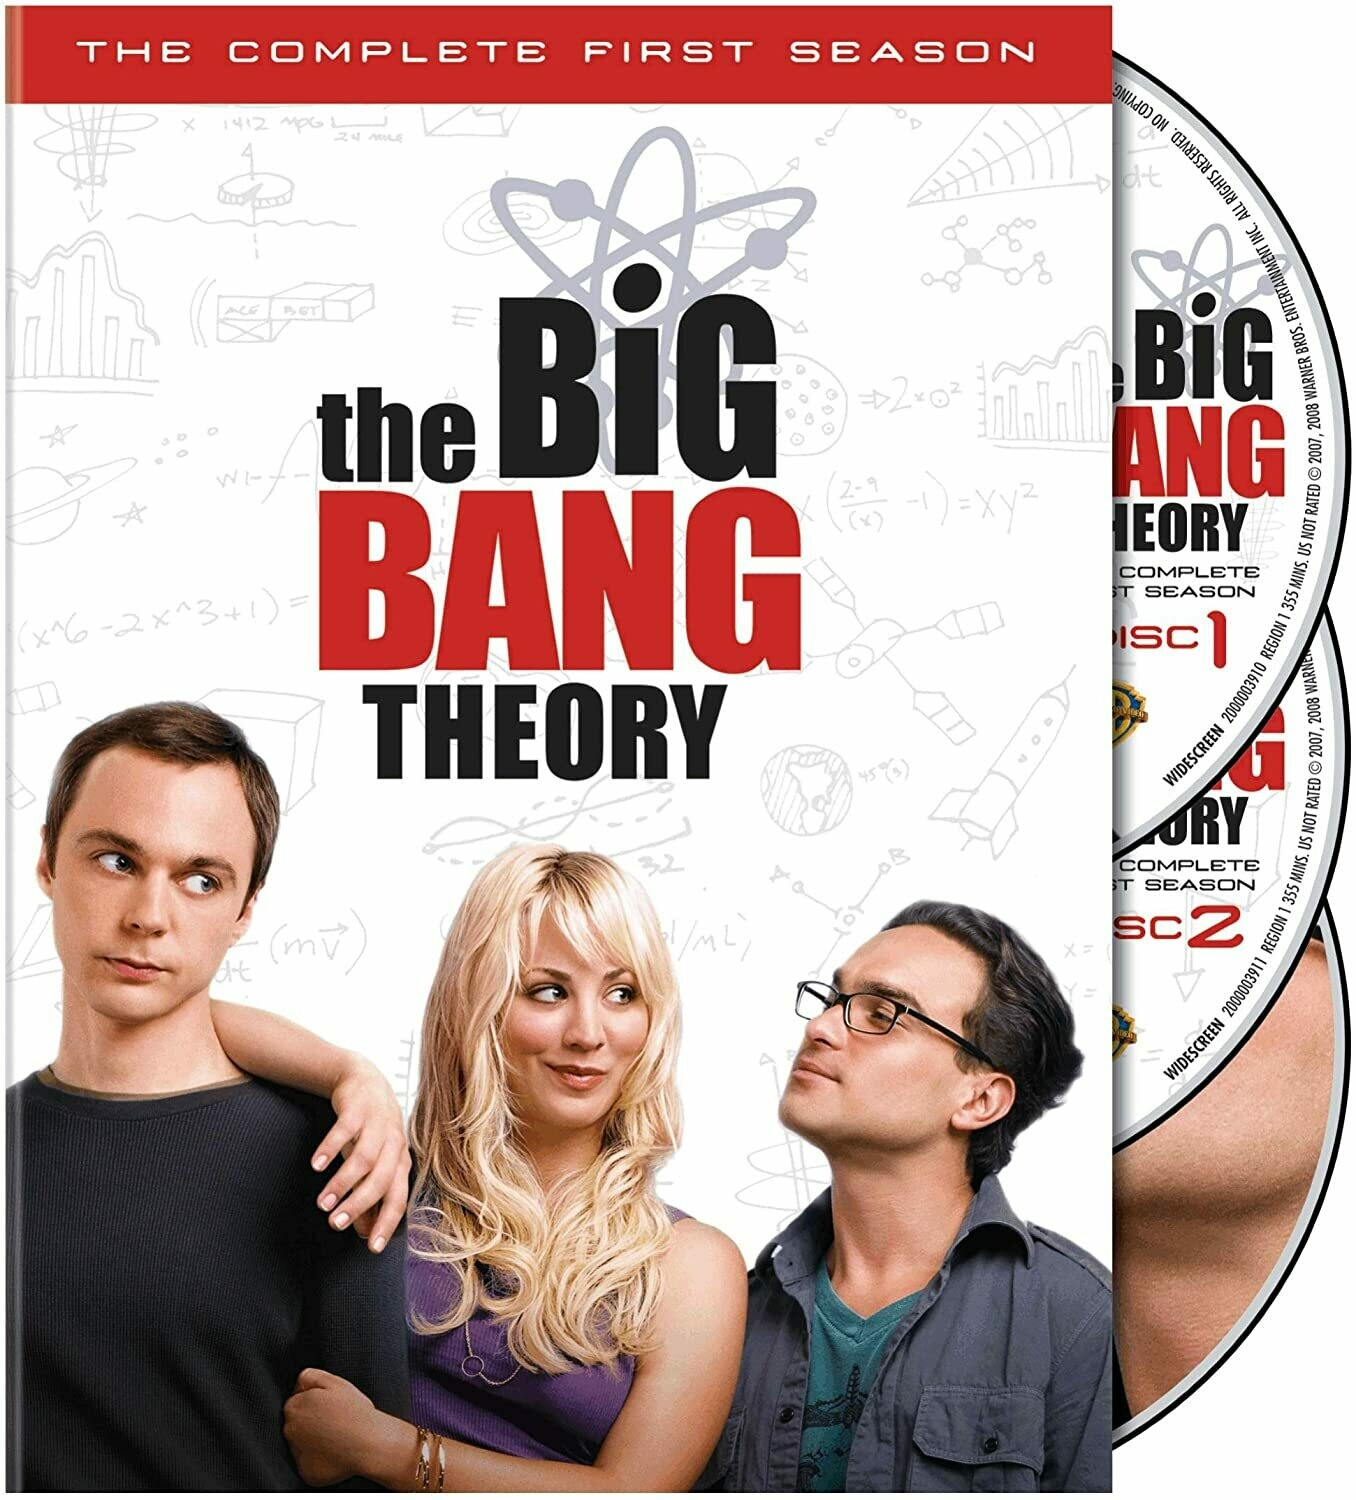 Big Bang Theory Season One (7day rental)